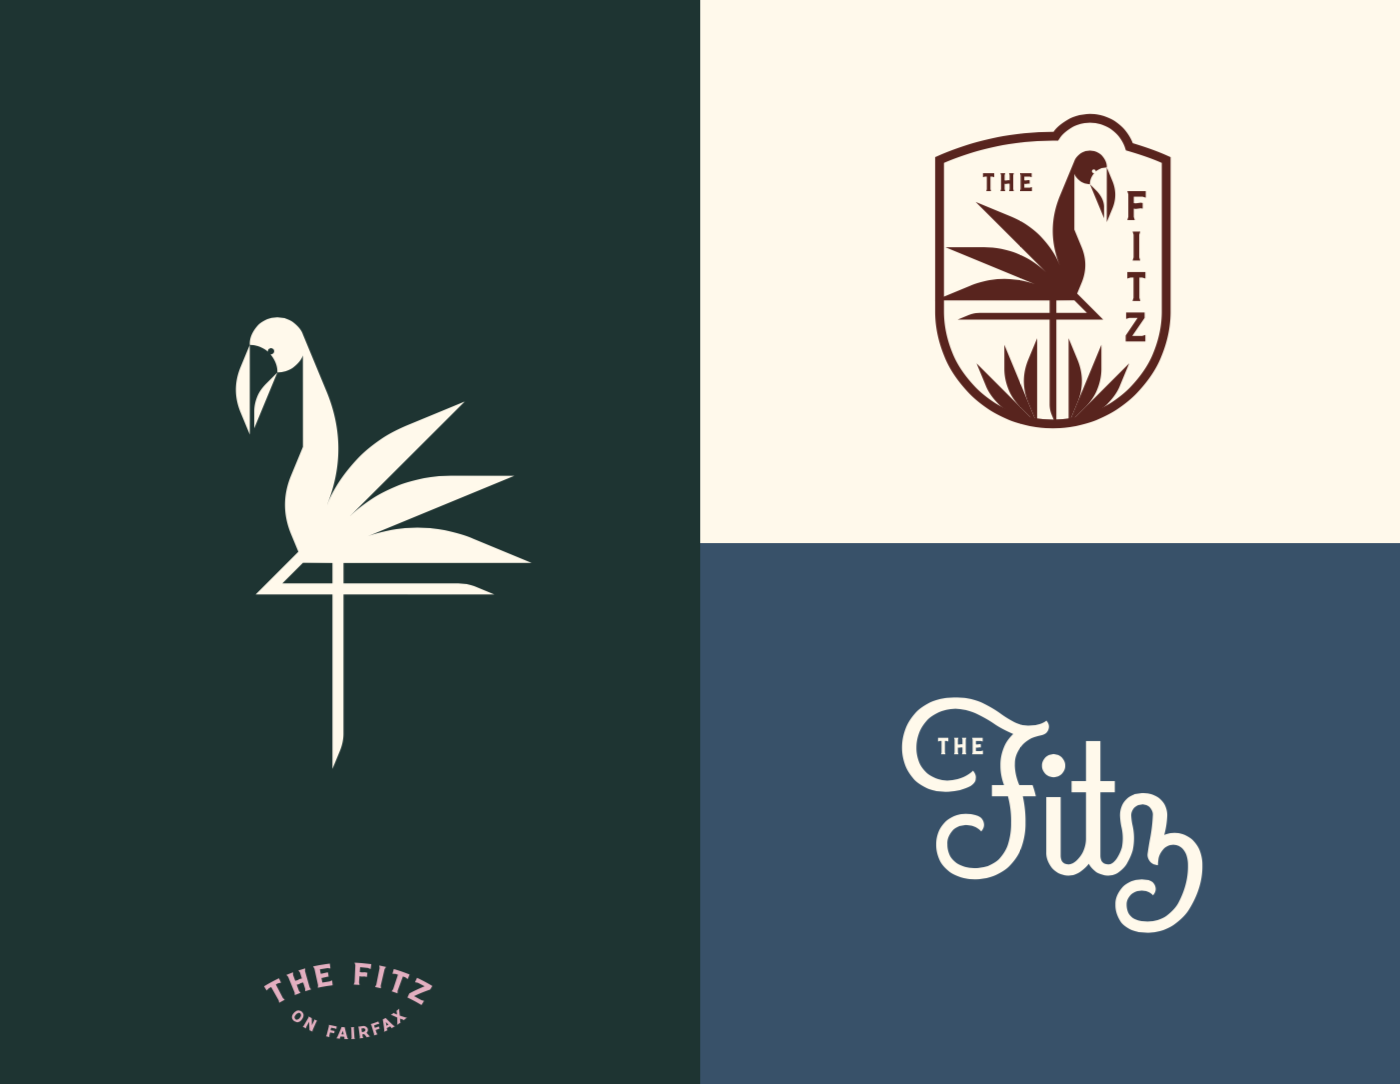 branding-services-multifamily-brand-messaging logos and typography